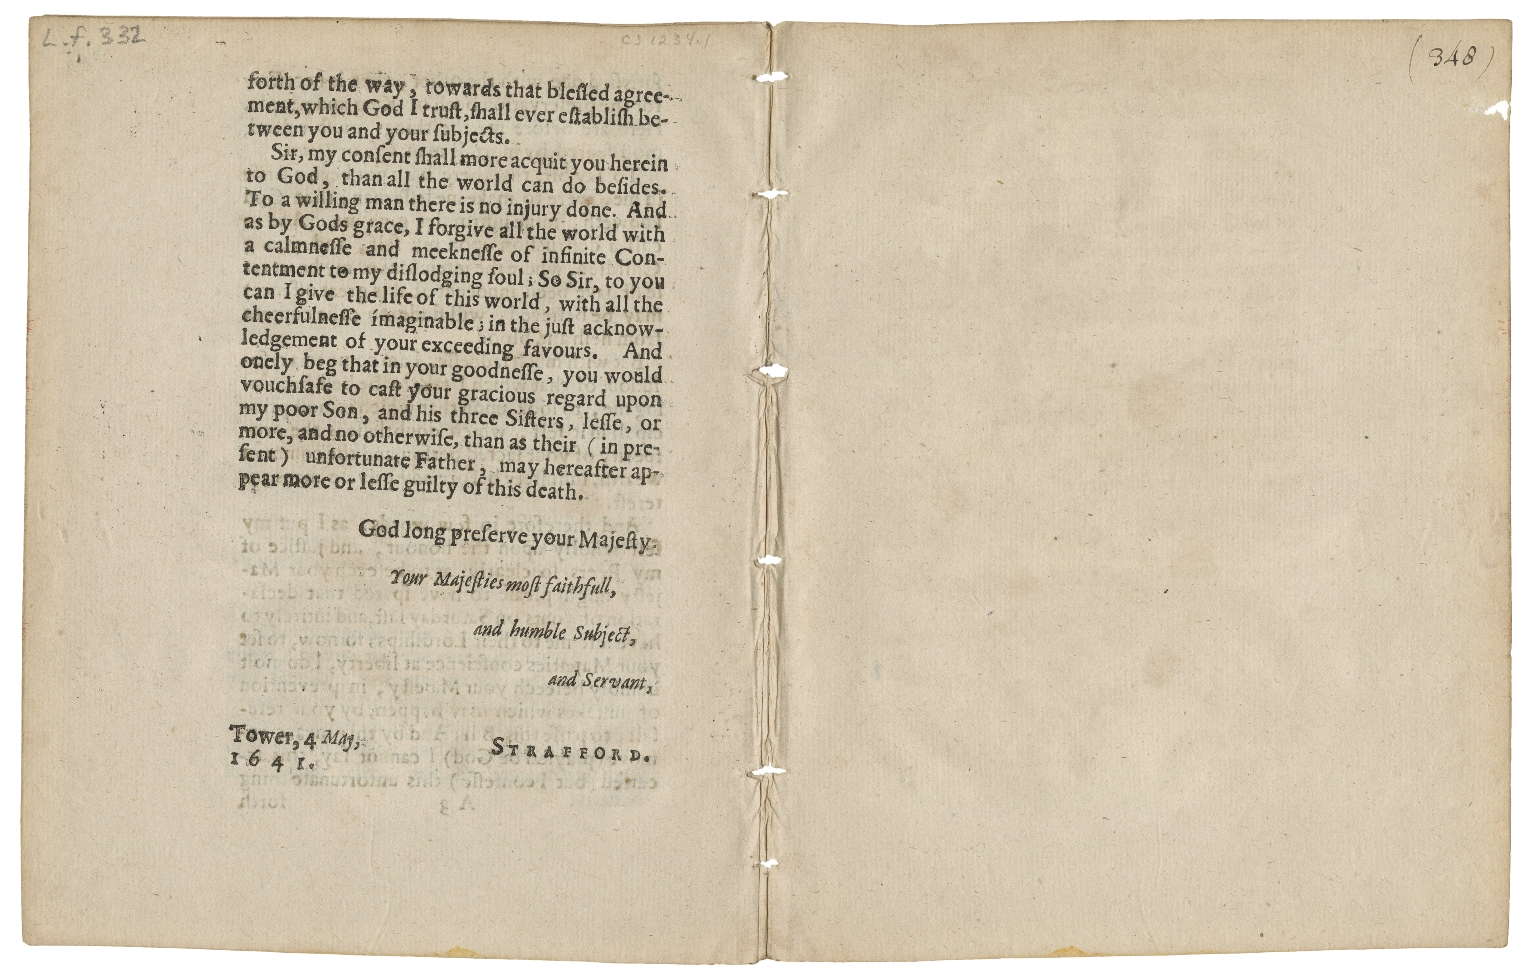 Strafford, Thomas Wentworth, Earl of, 1593-1641. The Earle of Straffords letter to His Most Excellent Majestie, dated from the Tower, 4. May. 1641 1641